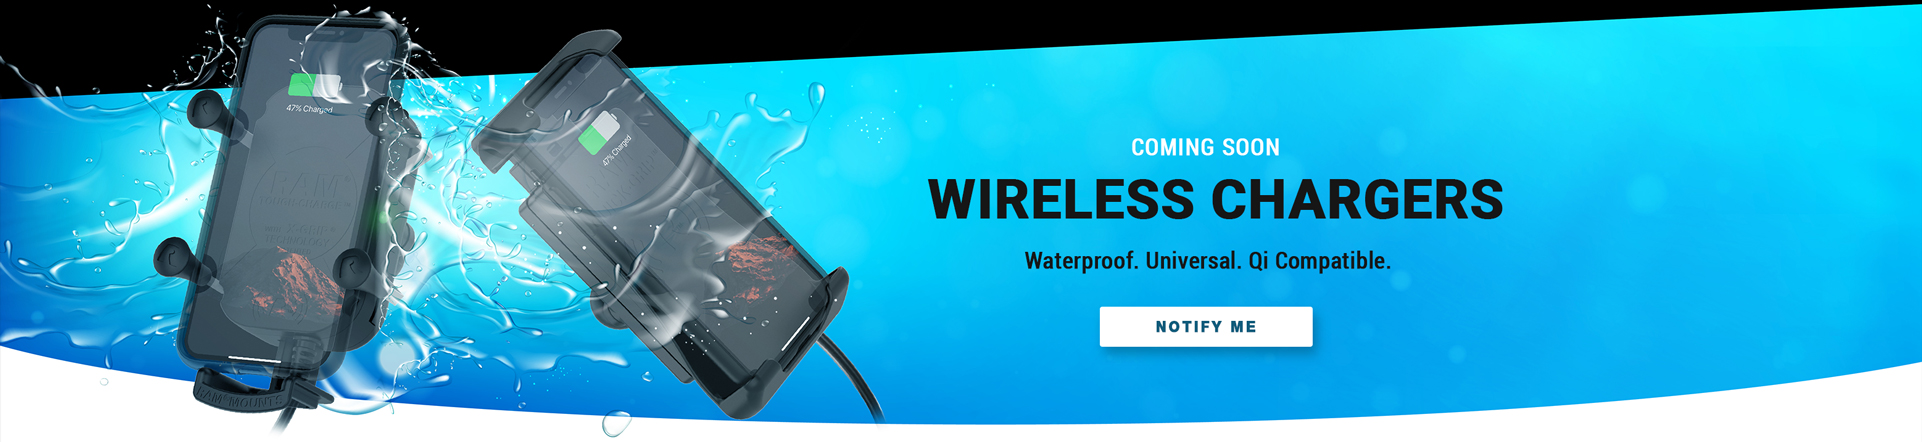 Wireless Waterproof Chargers Coming Soon